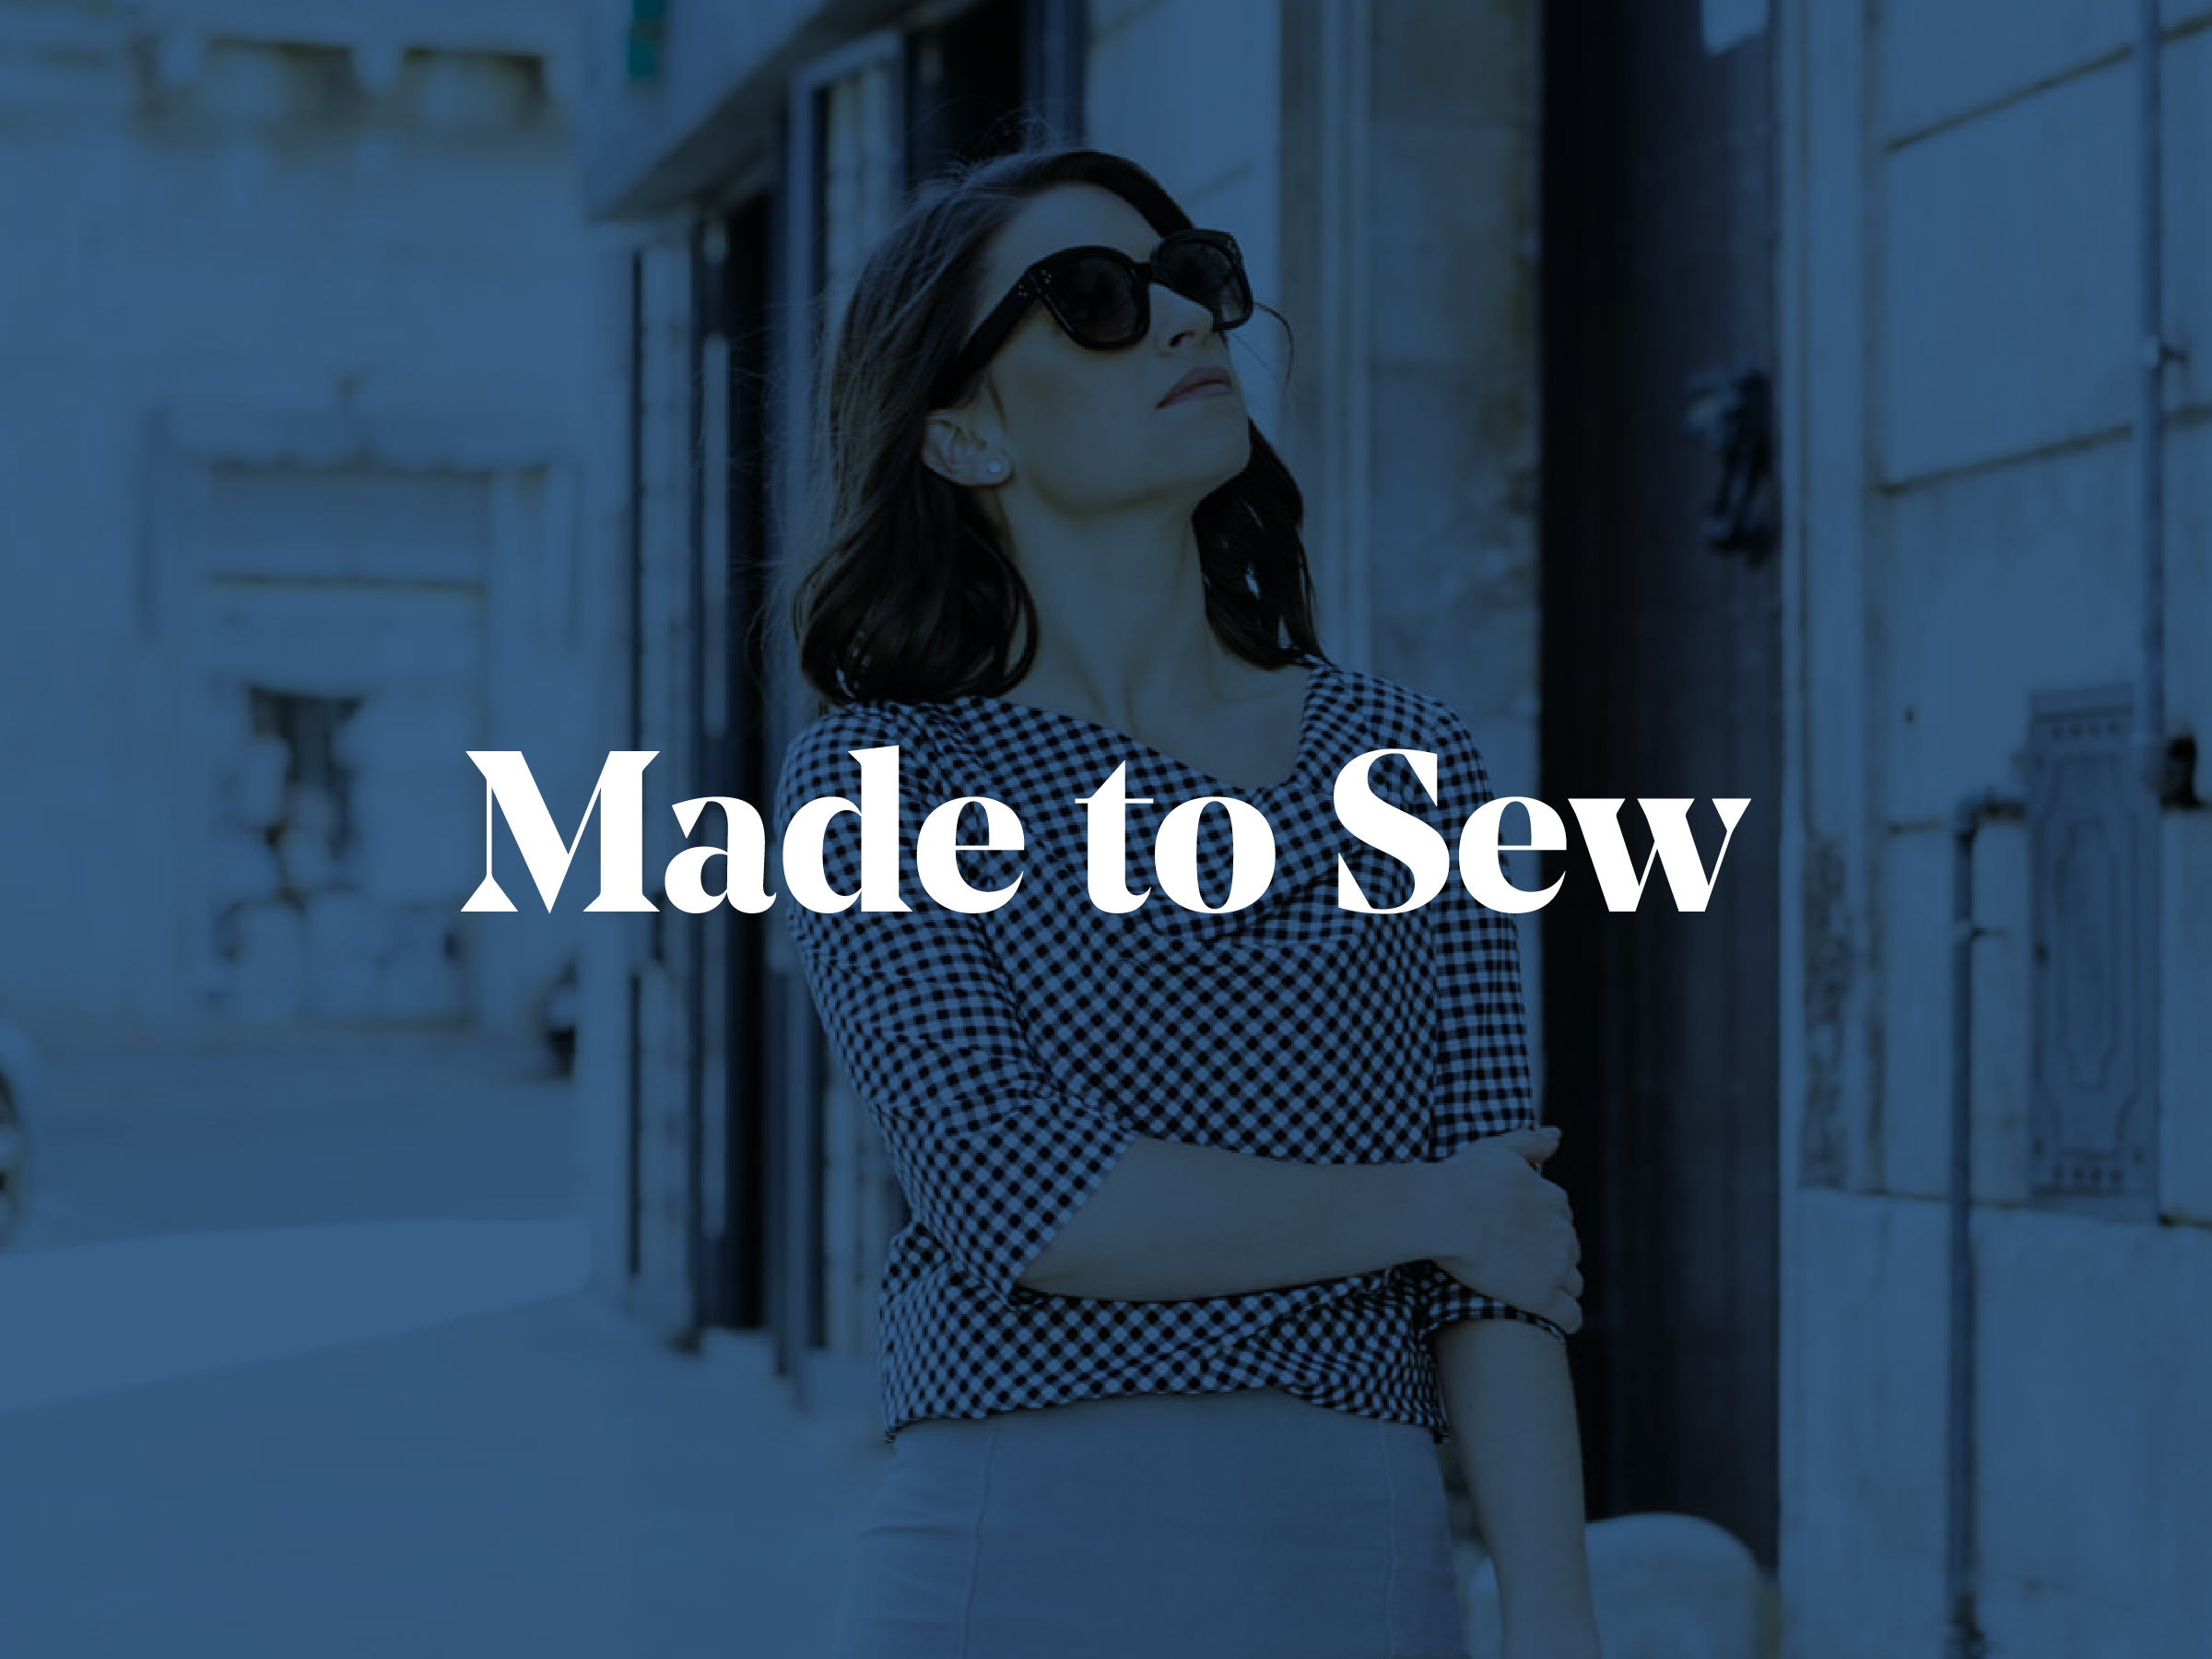 Lady in sunglasses with Made to Sew logo laid on top